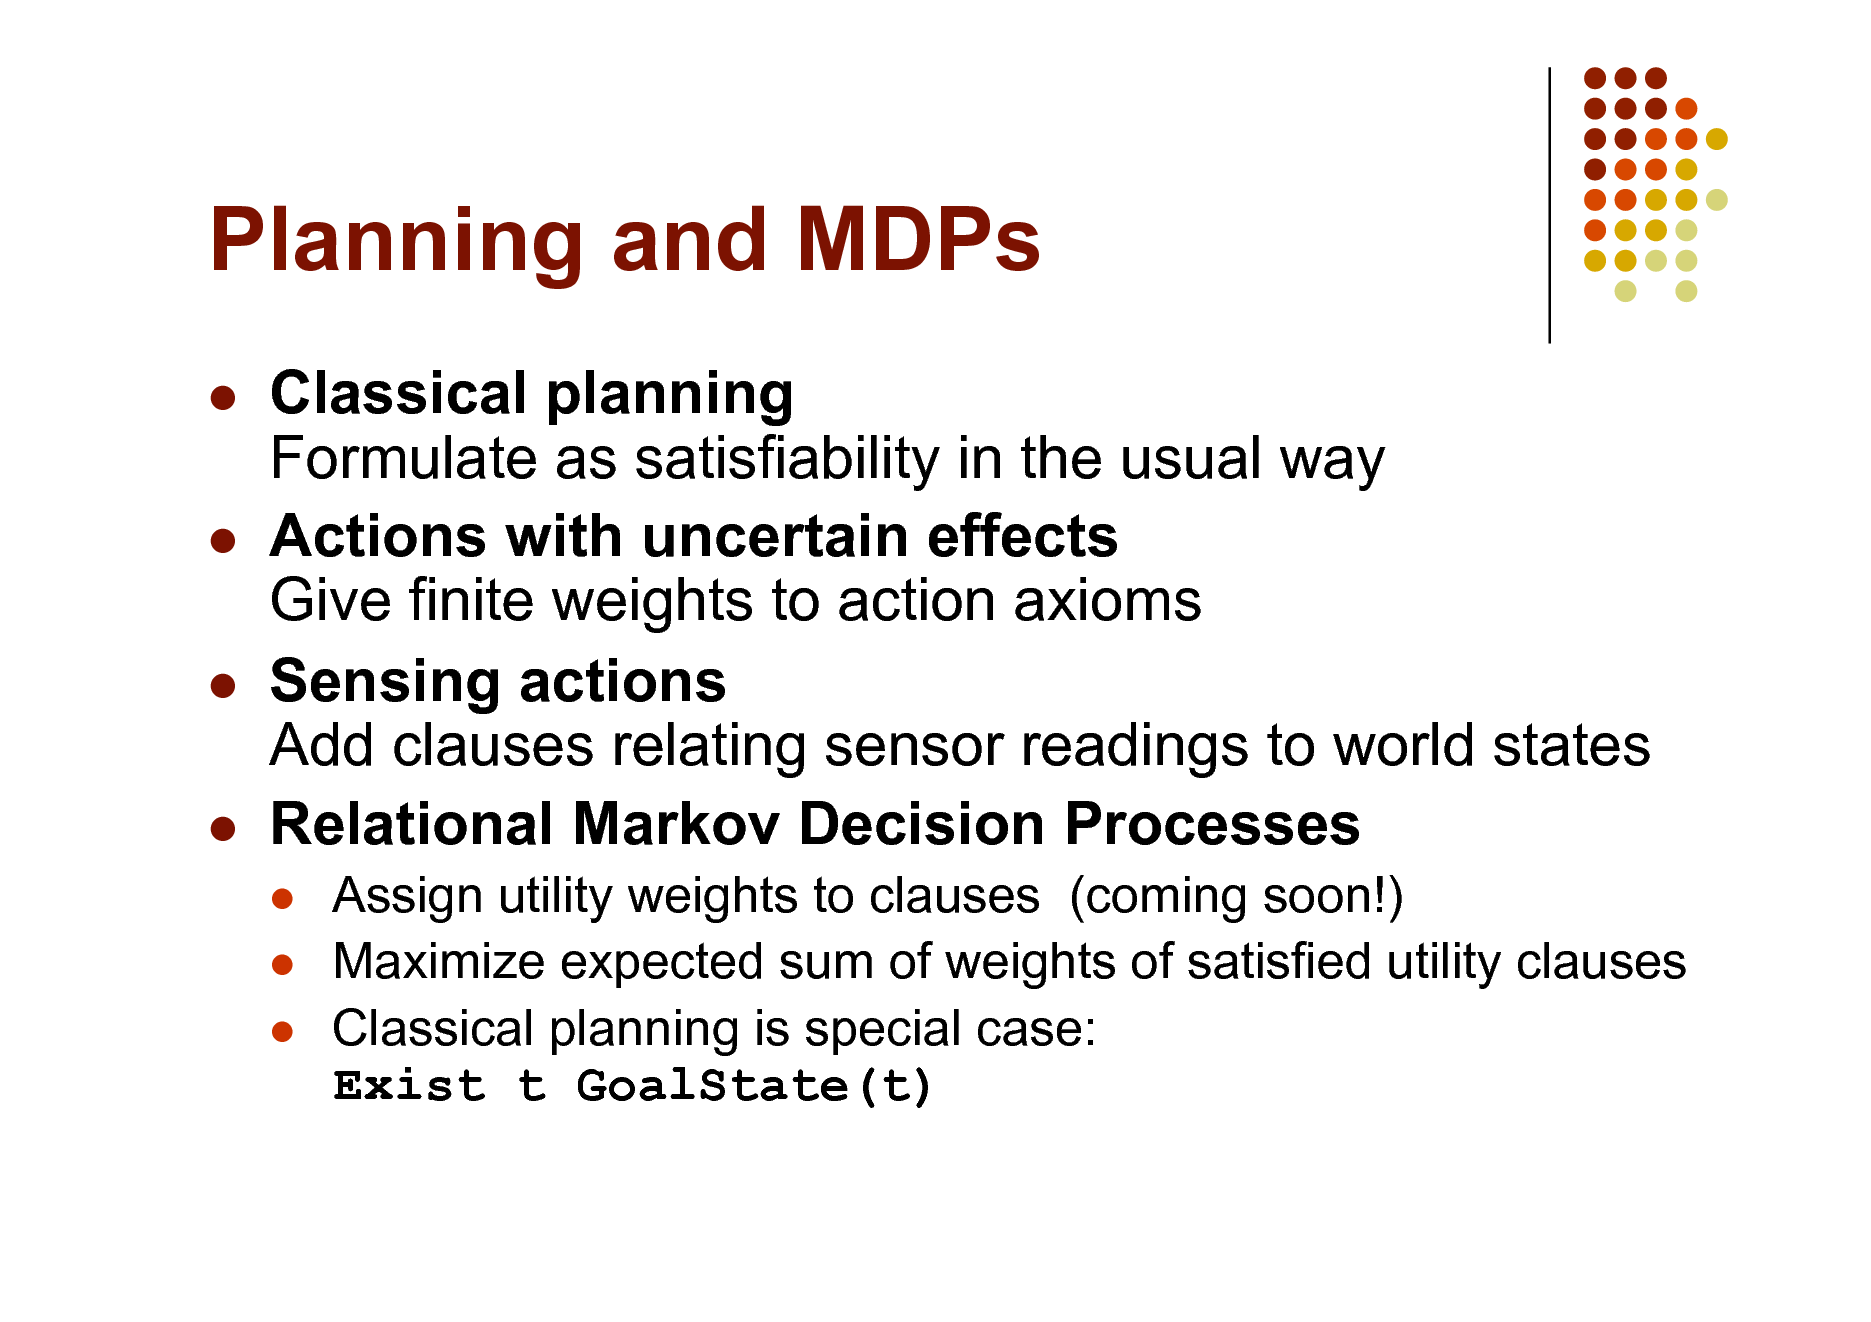 Slide: Planning and MDPs      Classical planning Formulate as satisfiability in the usual way Actions with uncertain effects Give finite weights to action axioms Sensing actions Add clauses relating sensor readings to world states Relational Markov Decision Processes     Assign utility weights to clauses (coming soon!) Maximize expected sum of weights of satisfied utility clauses Classical planning is special case: Exist t GoalState(t)